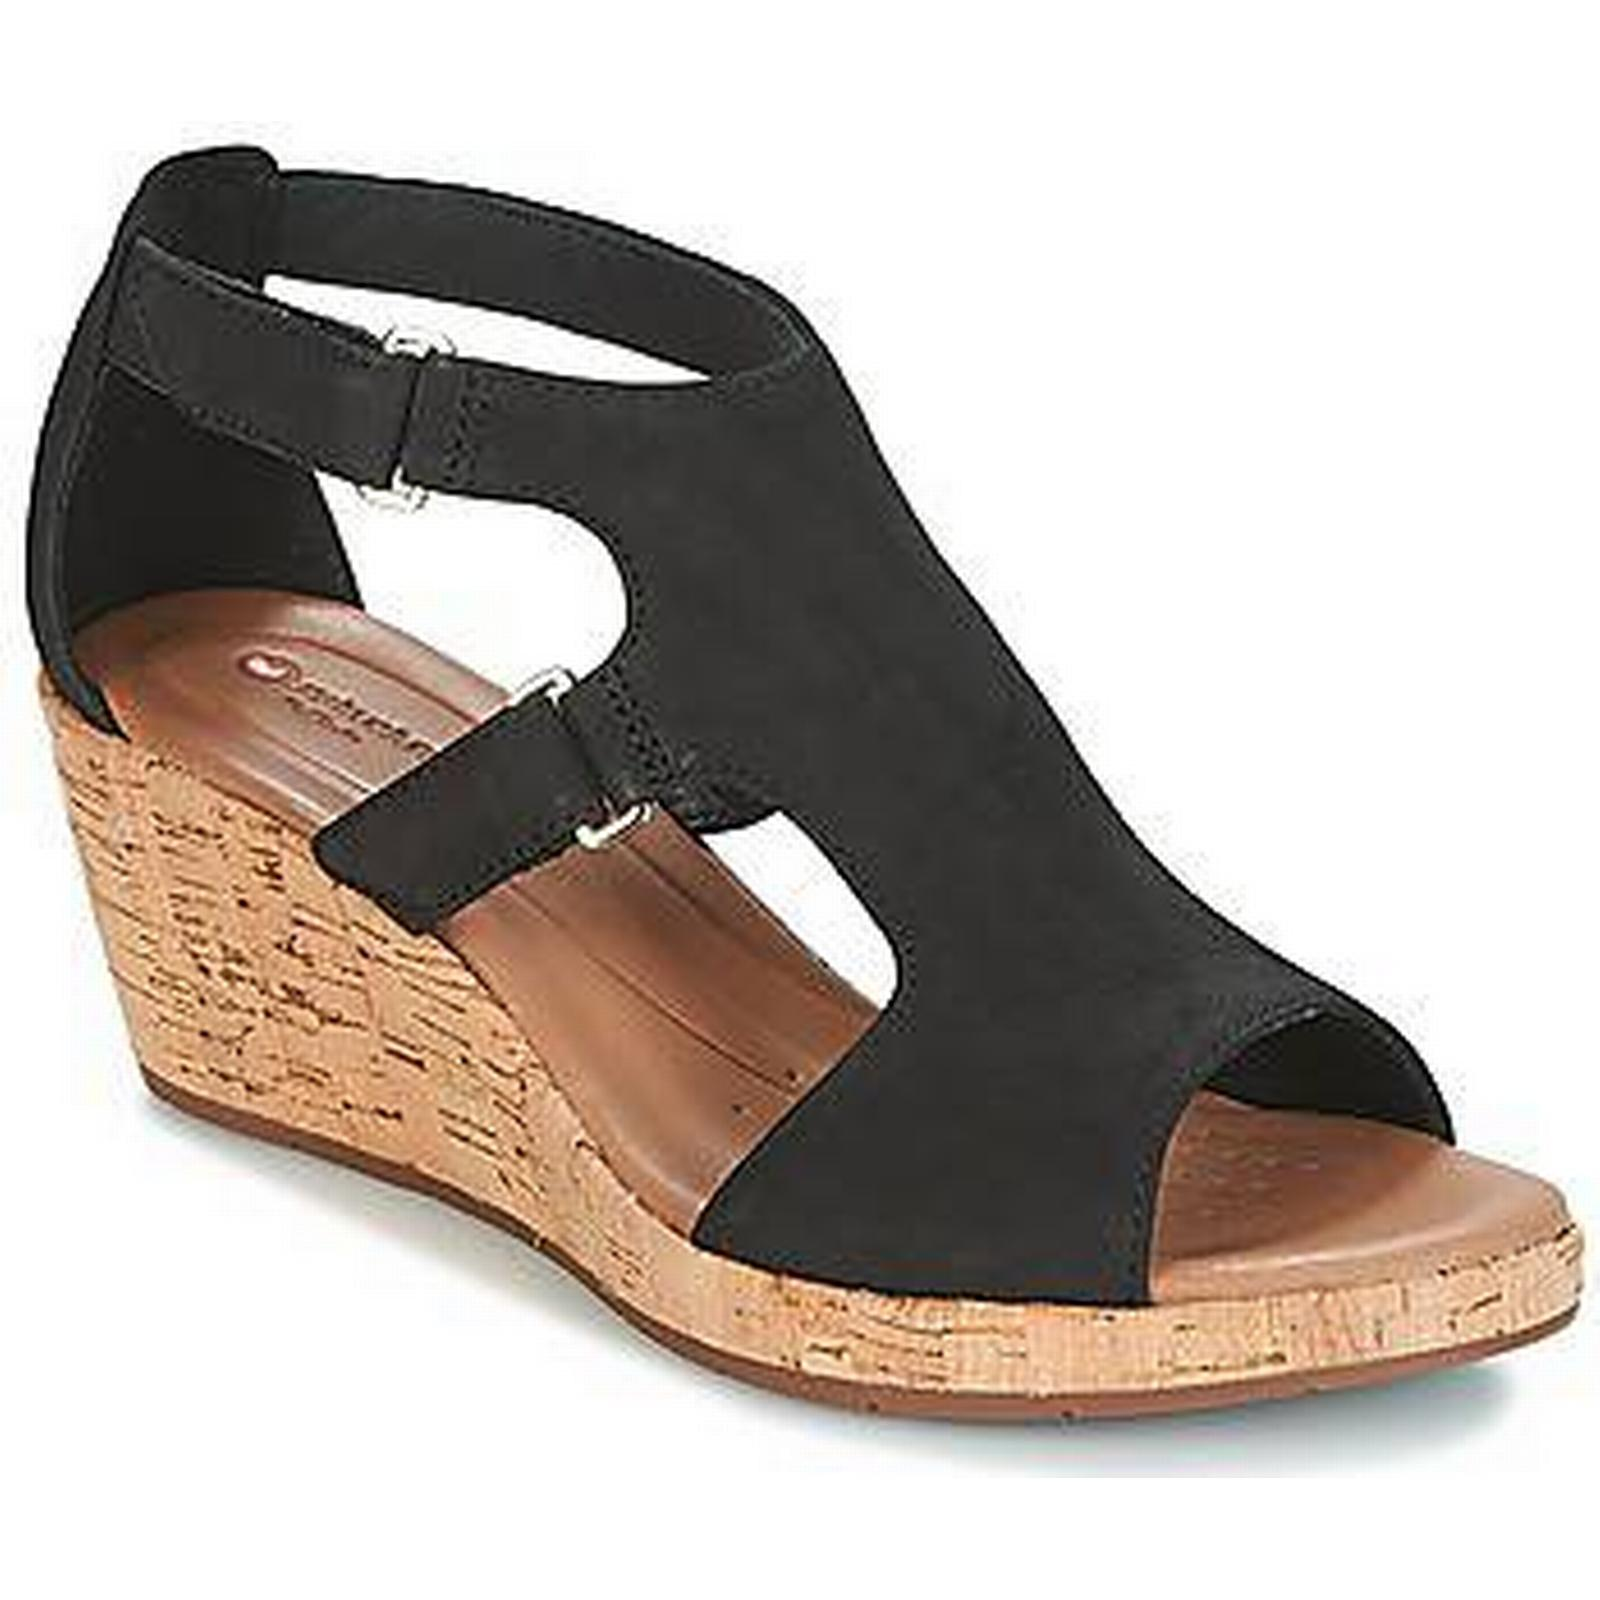 spartoo.co.uk clarks un plaza sangle femmes & en #  ; s les sandales en & noir 53aa0e